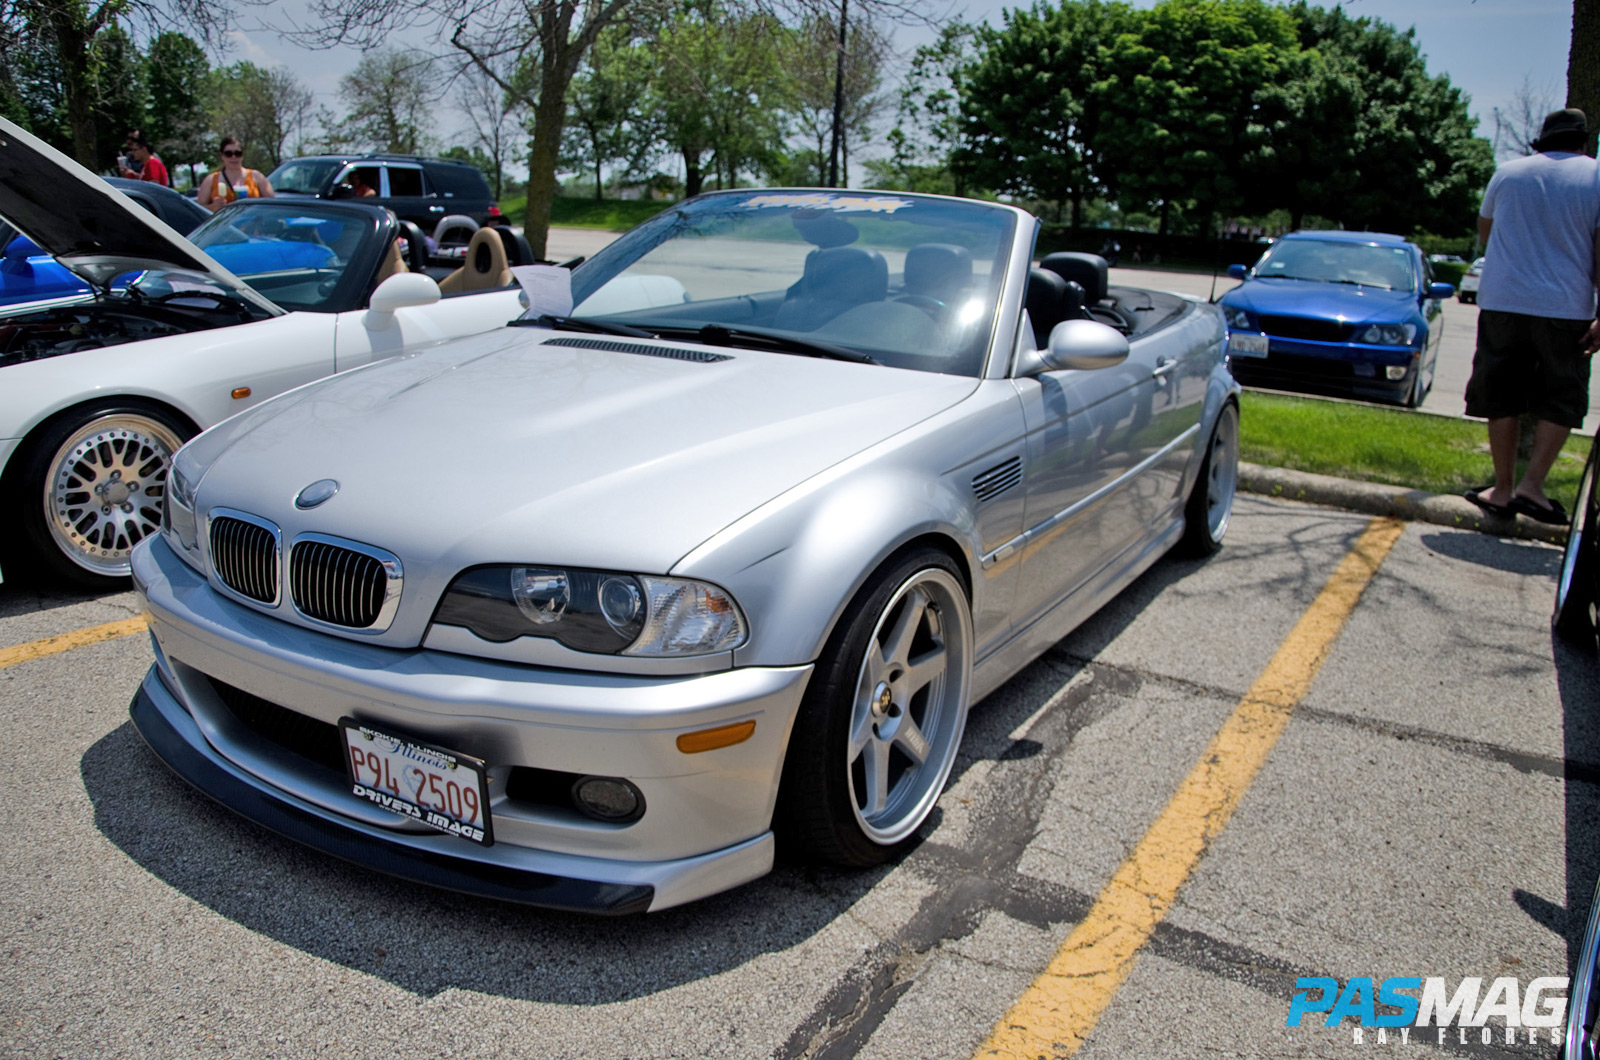 PASMAG CMN Car Show Gurnee Illinois June 1 2014 Ray Flores Event Photo Coverage DSC 5900